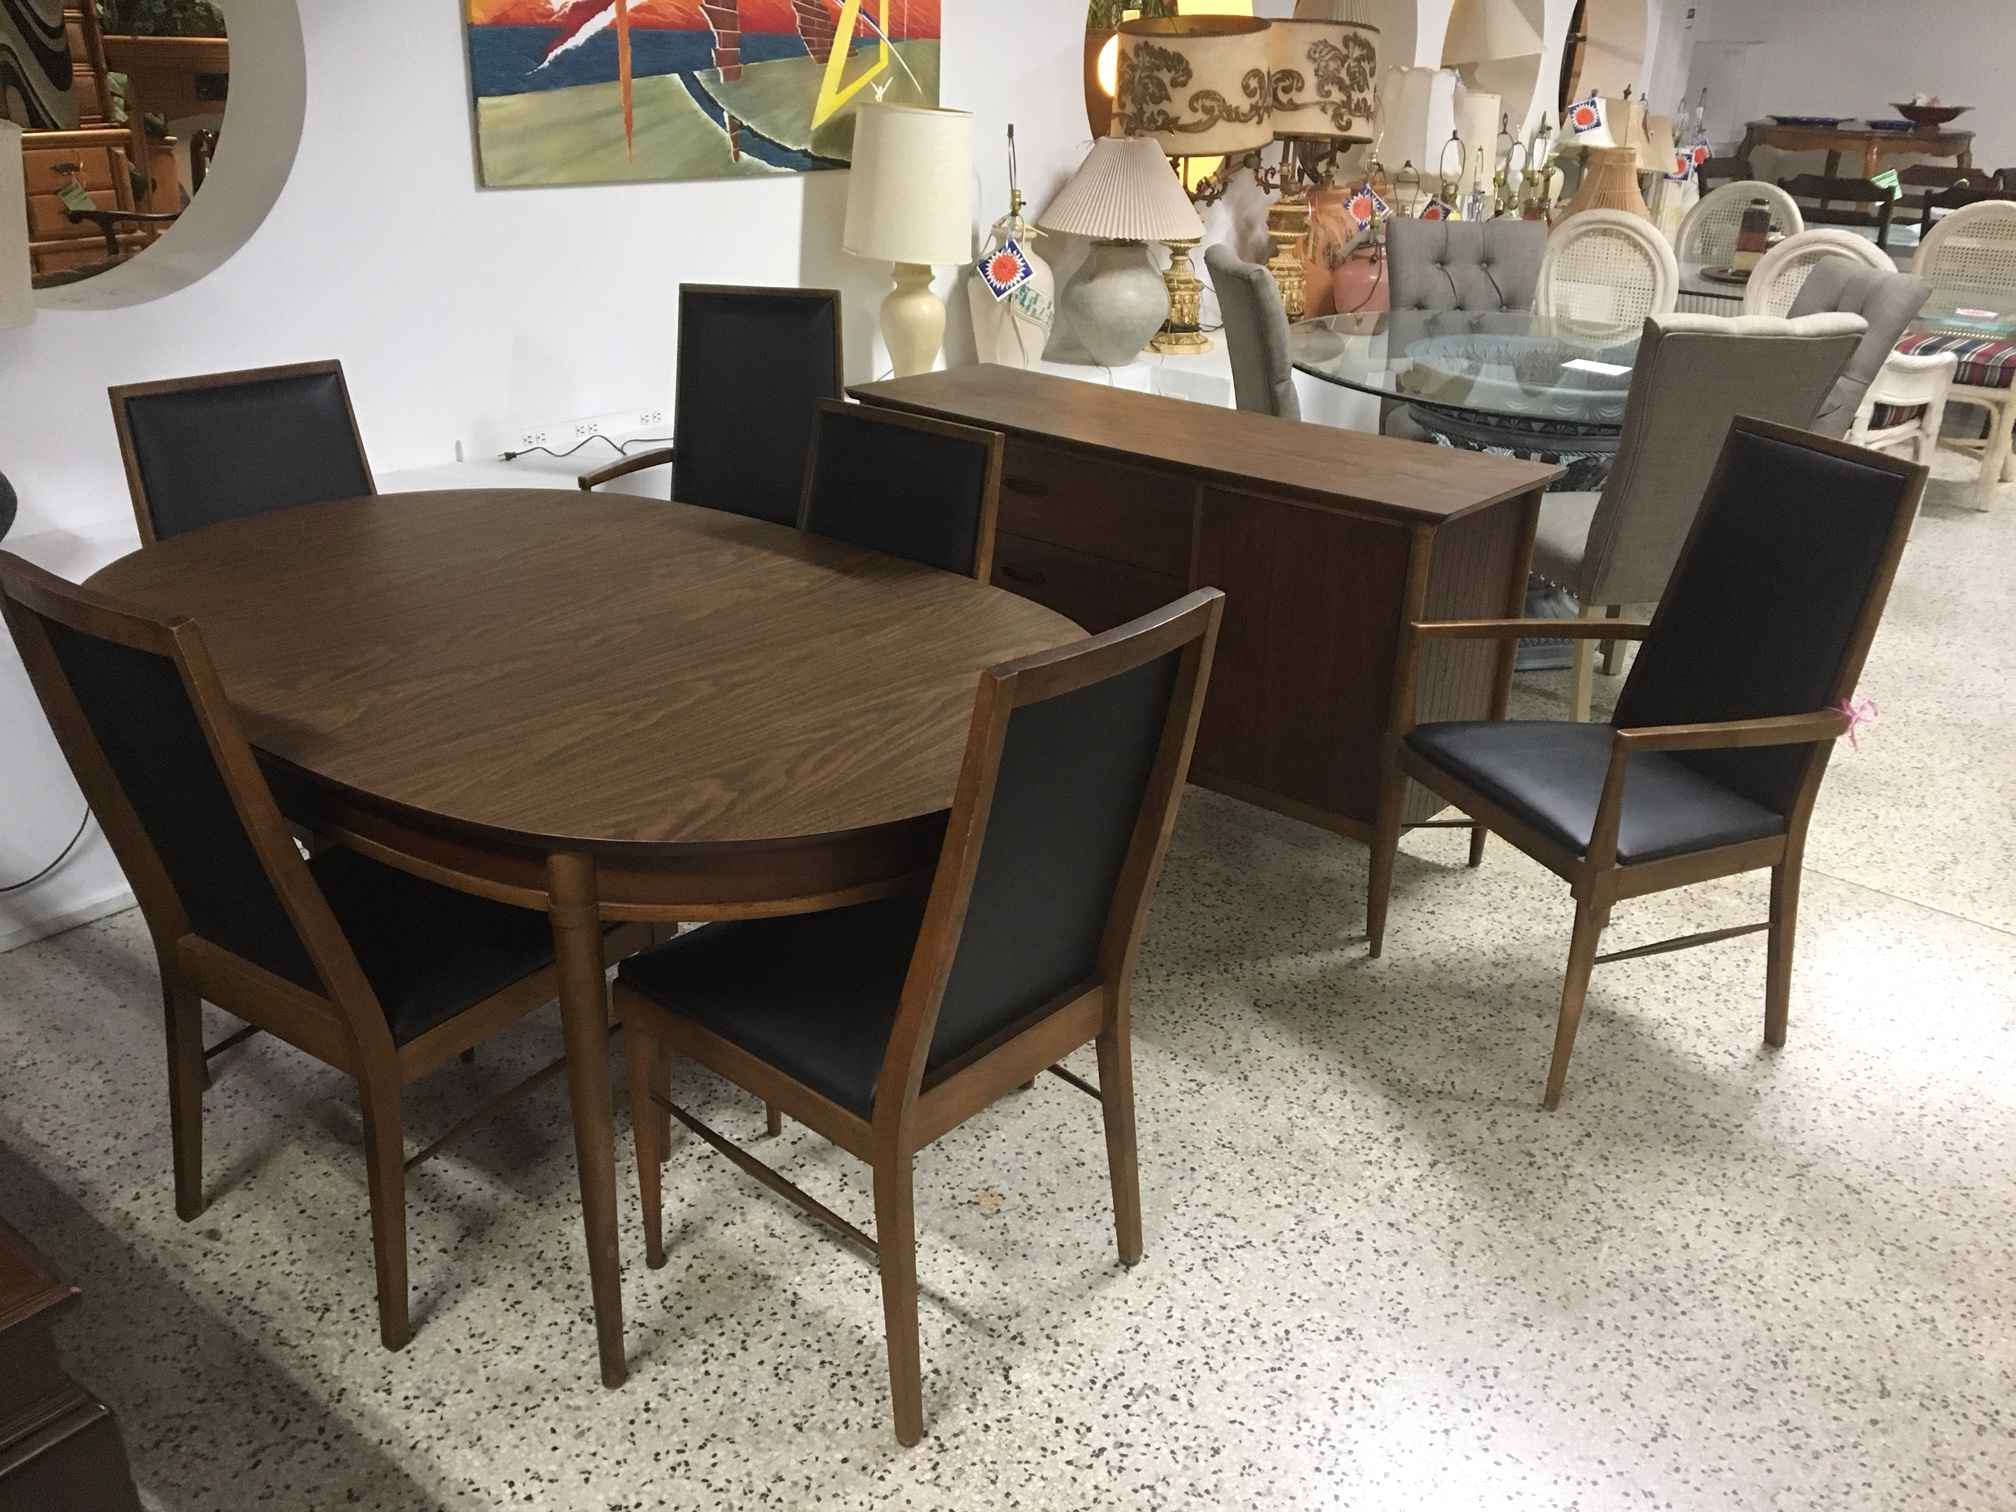 Trendy Contemporary 4 Seating Square Dining Tables Pertaining To Exciting Modern Dinning Room Set Dining For Sets Round Table (View 11 of 25)